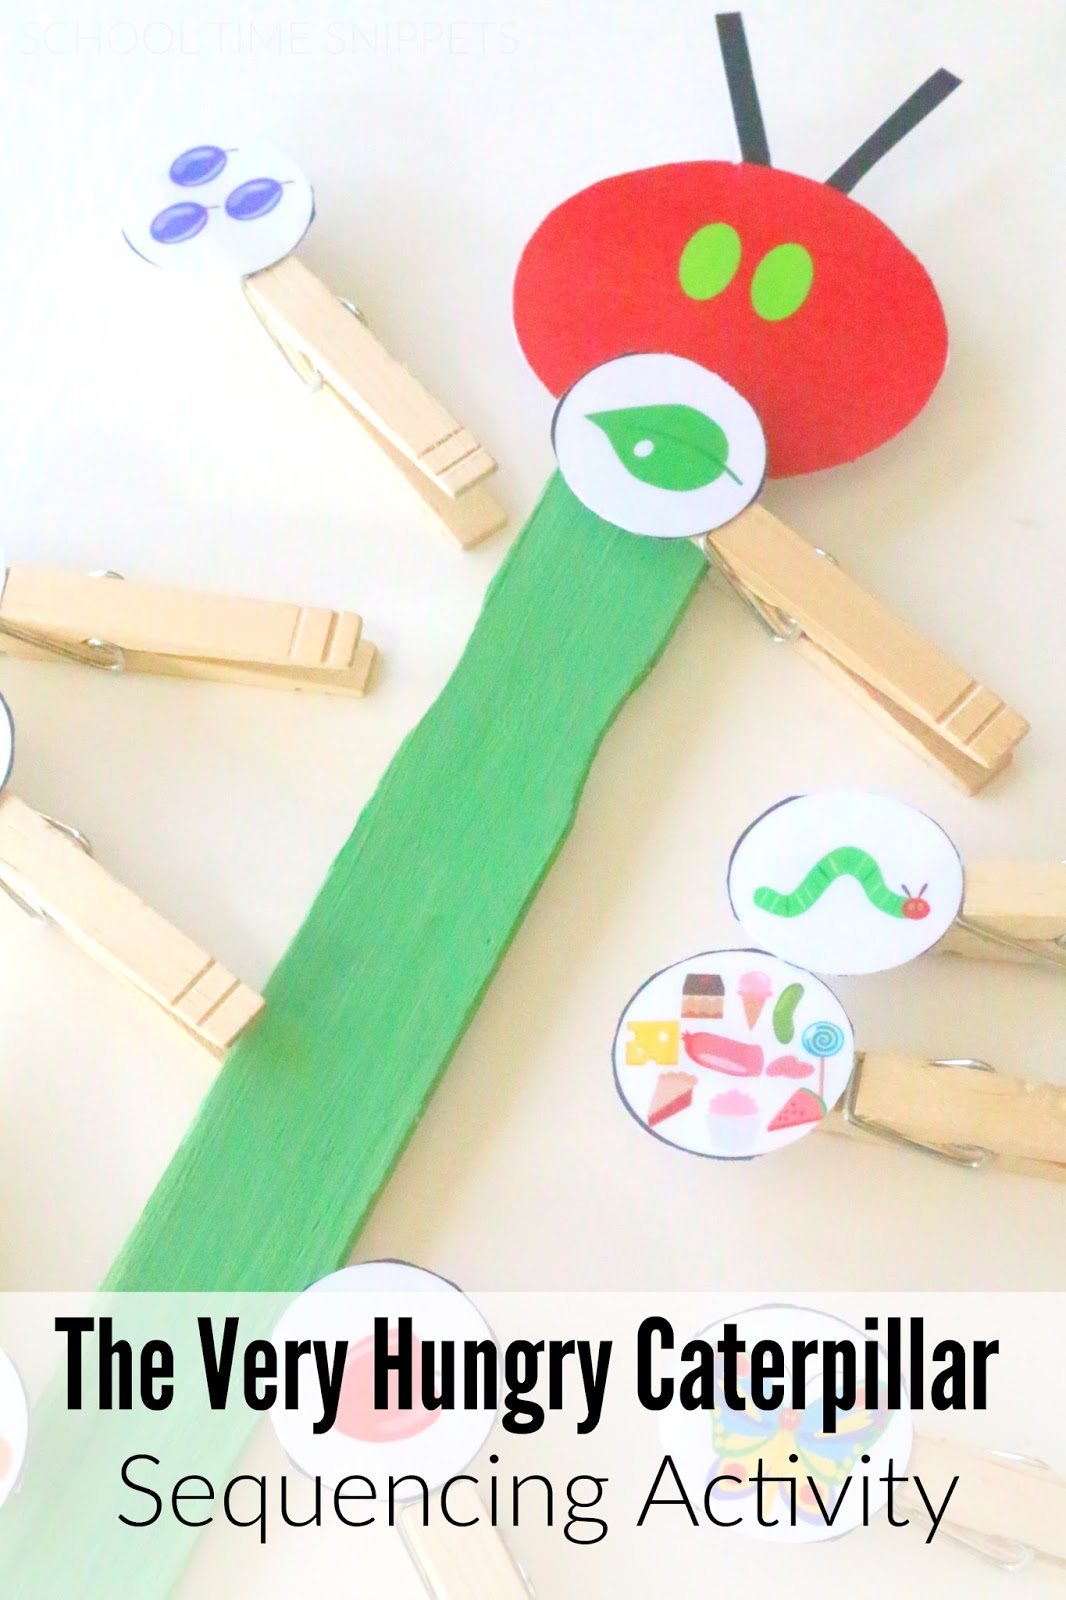 The Very Hungry Caterpillar Story Sequencing Activity